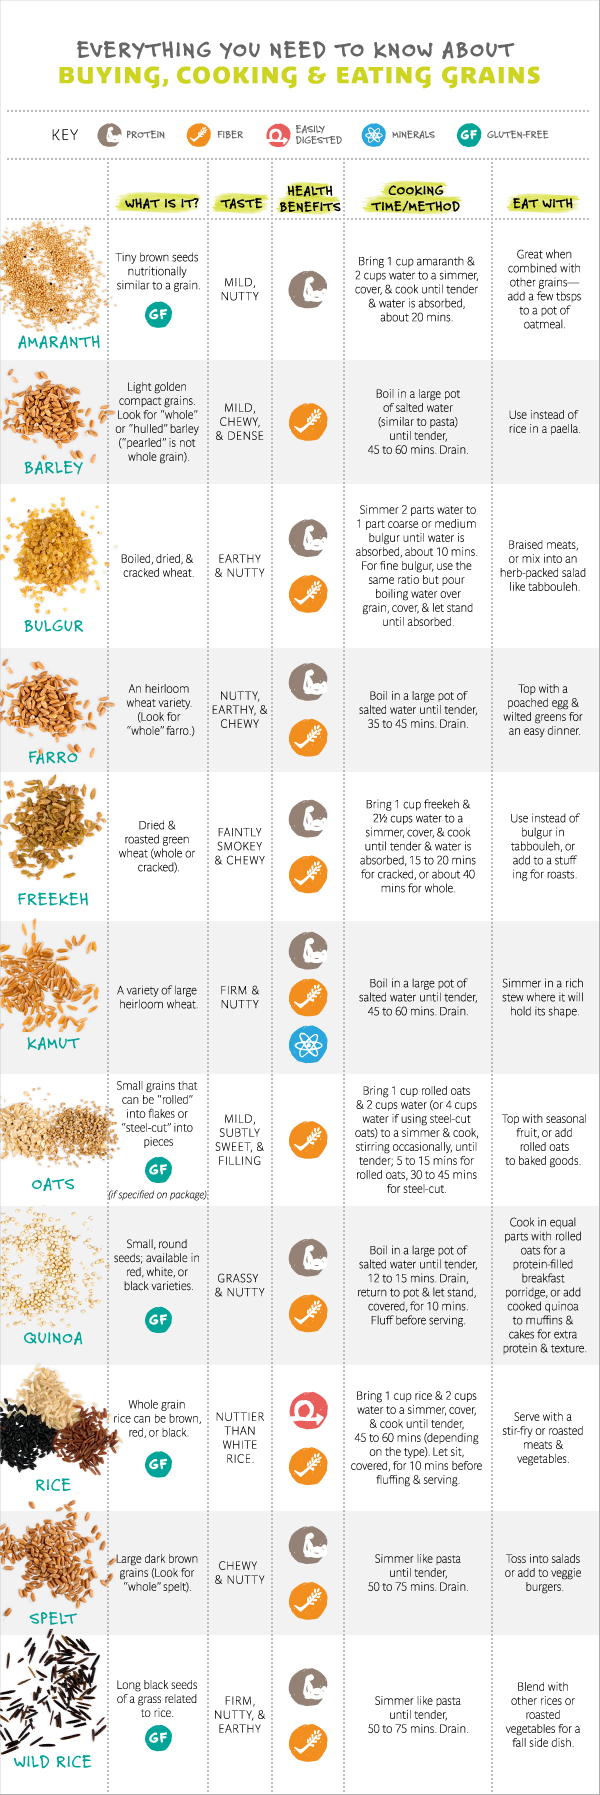 whole foods general information guide